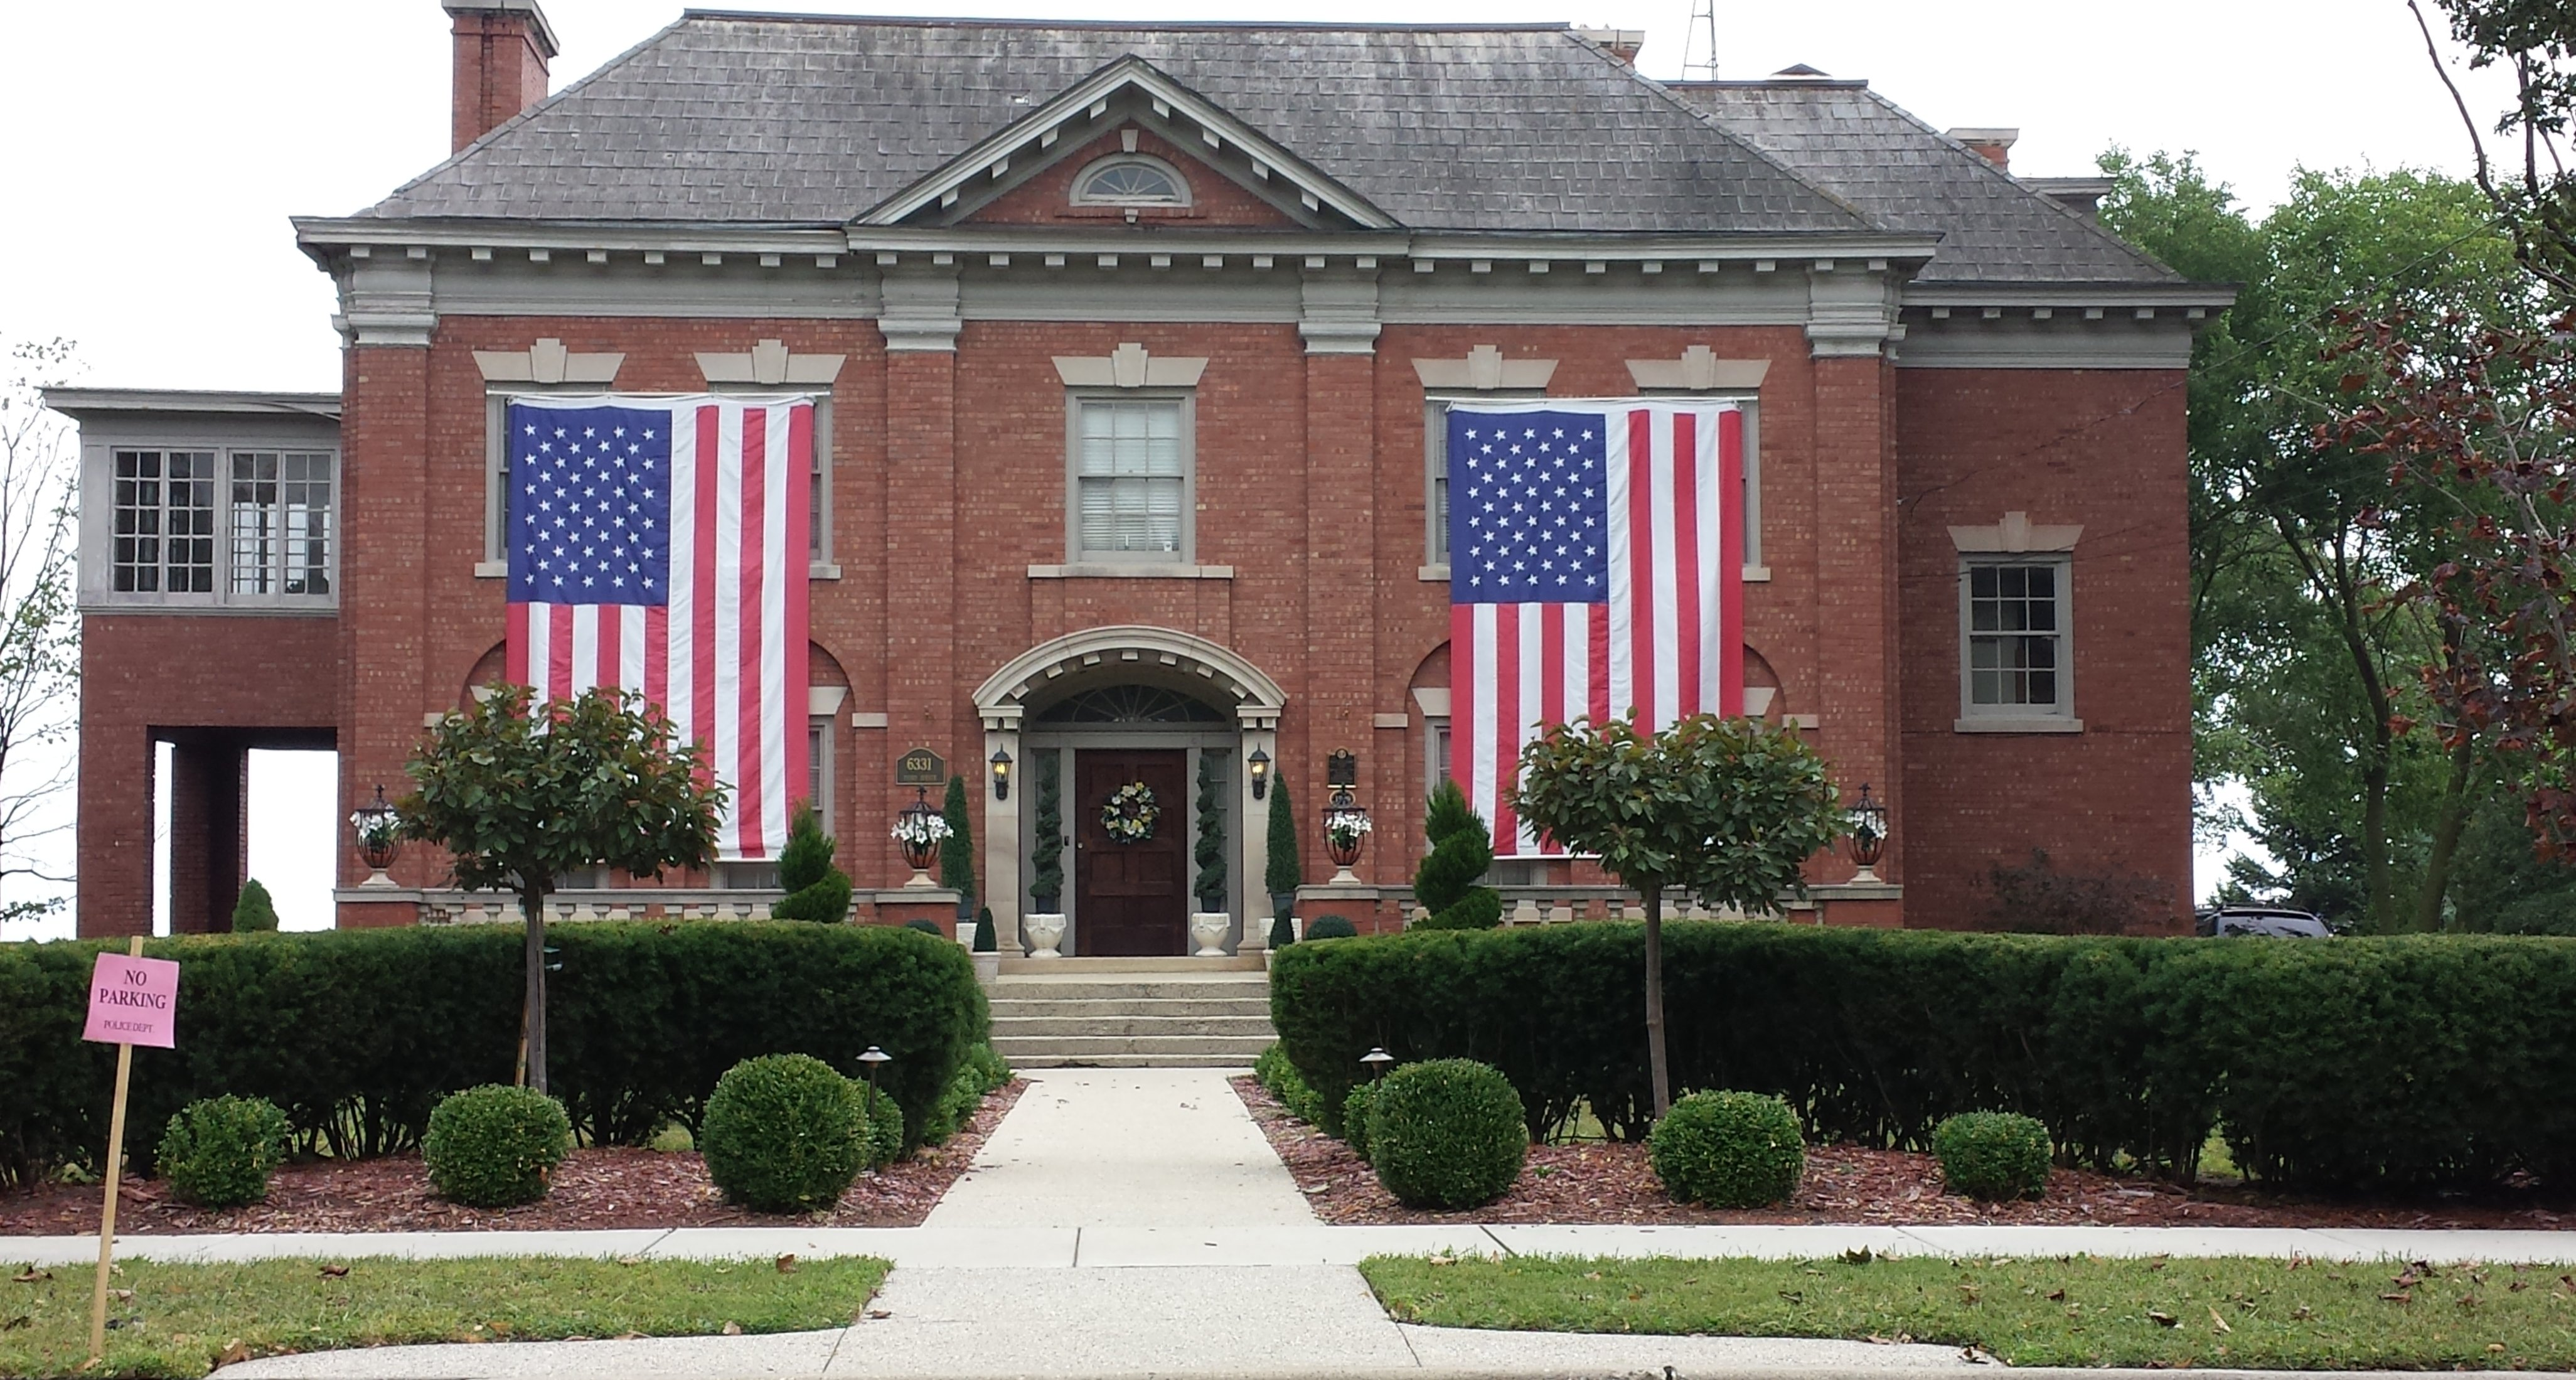 Historical Mansions And Houses Of Kenosha Wisconsin